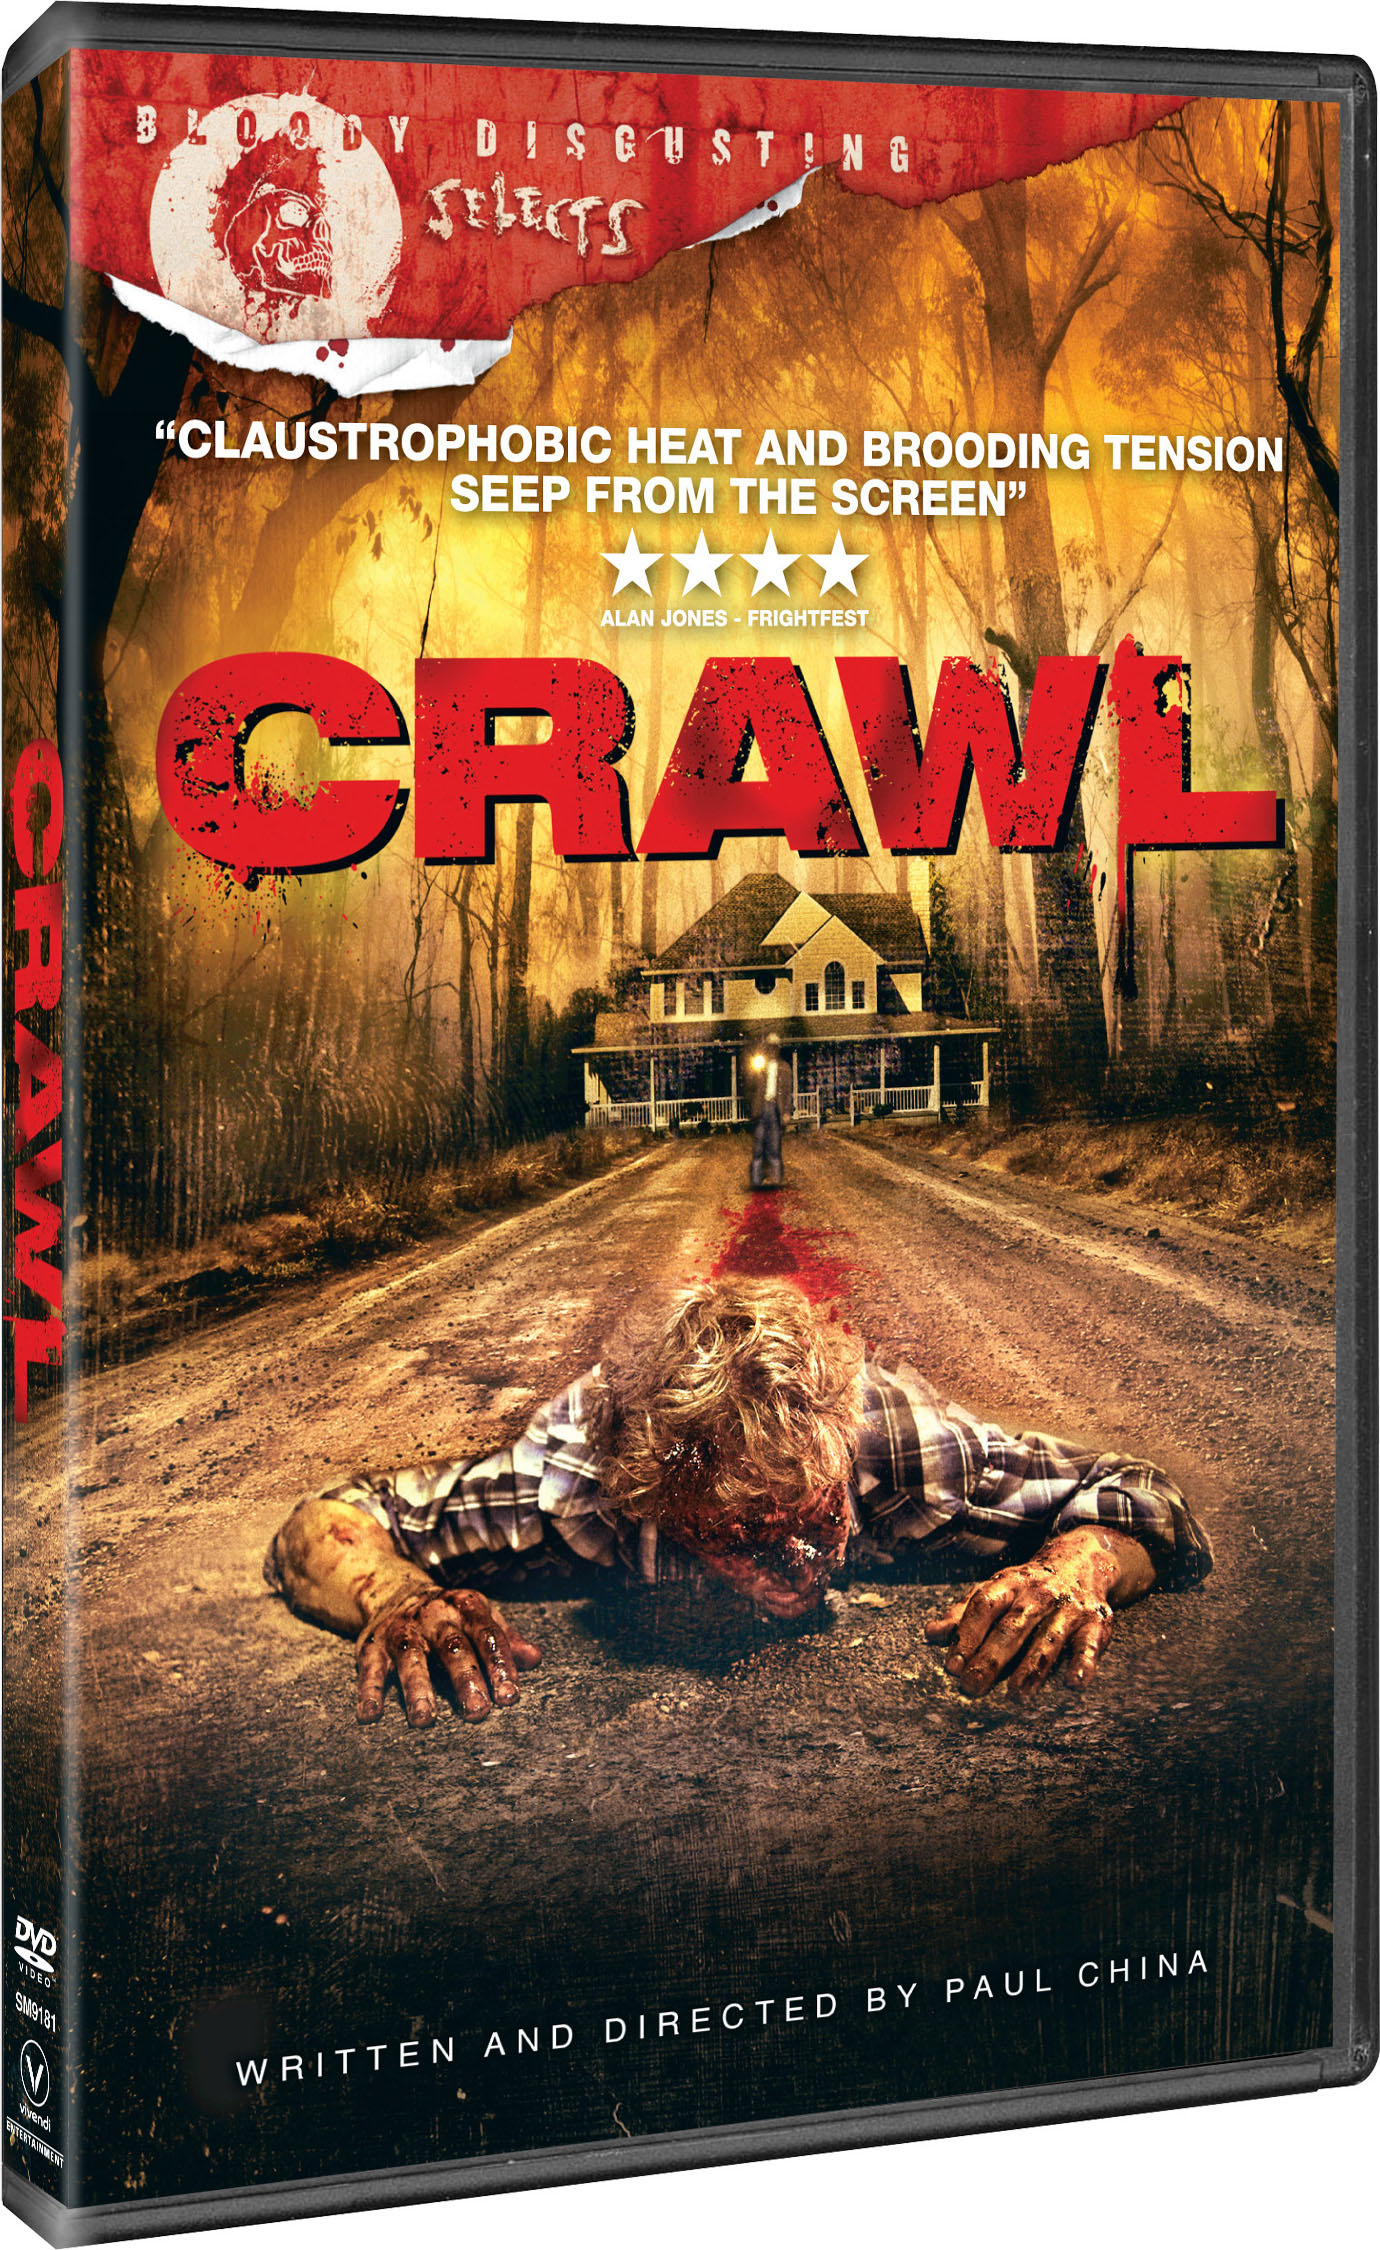 Crawl 3D Crawl Coming To DVD And Digital Download February 26